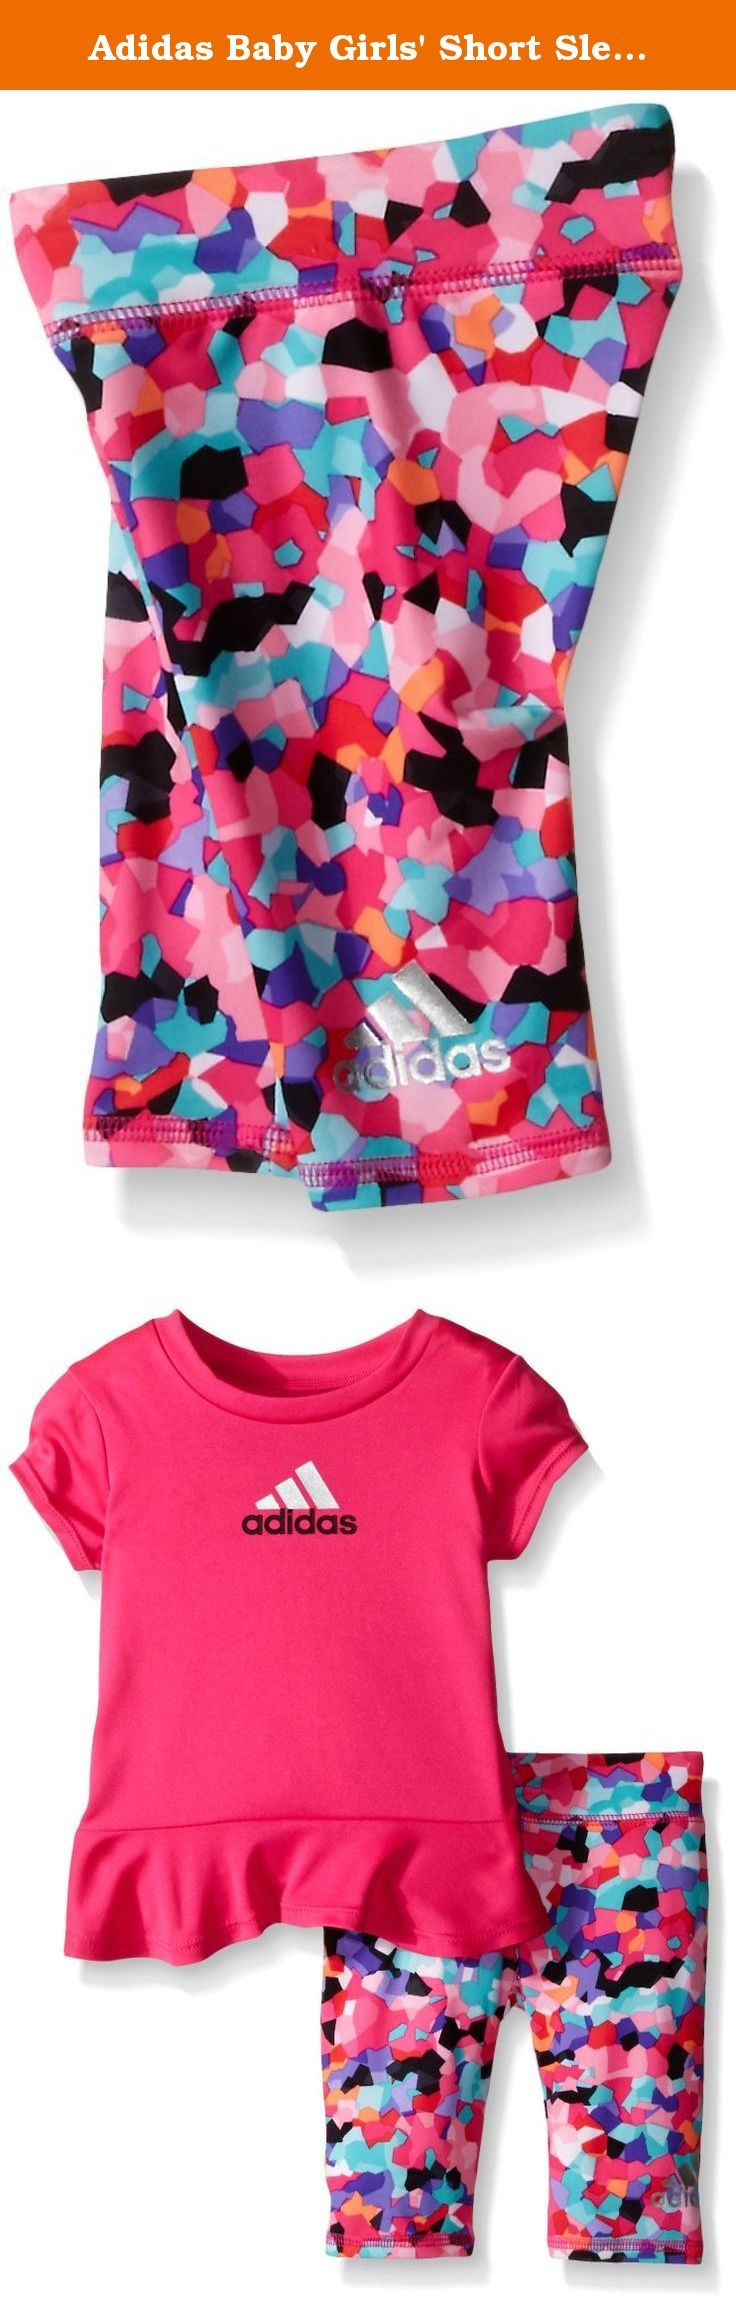 Adidas Baby Girls' Short Sleeve Tee and Capri Set, Shock Pink, 6 Months. The spin Capri set features a top with cap sleeves and drop-tail skirted hem. Screen printed Adidas brand mark with silver foil on front. Printed Capri tight with all over seasonal prints and silver foil wrap around Adidas brand mark on lower left leg.